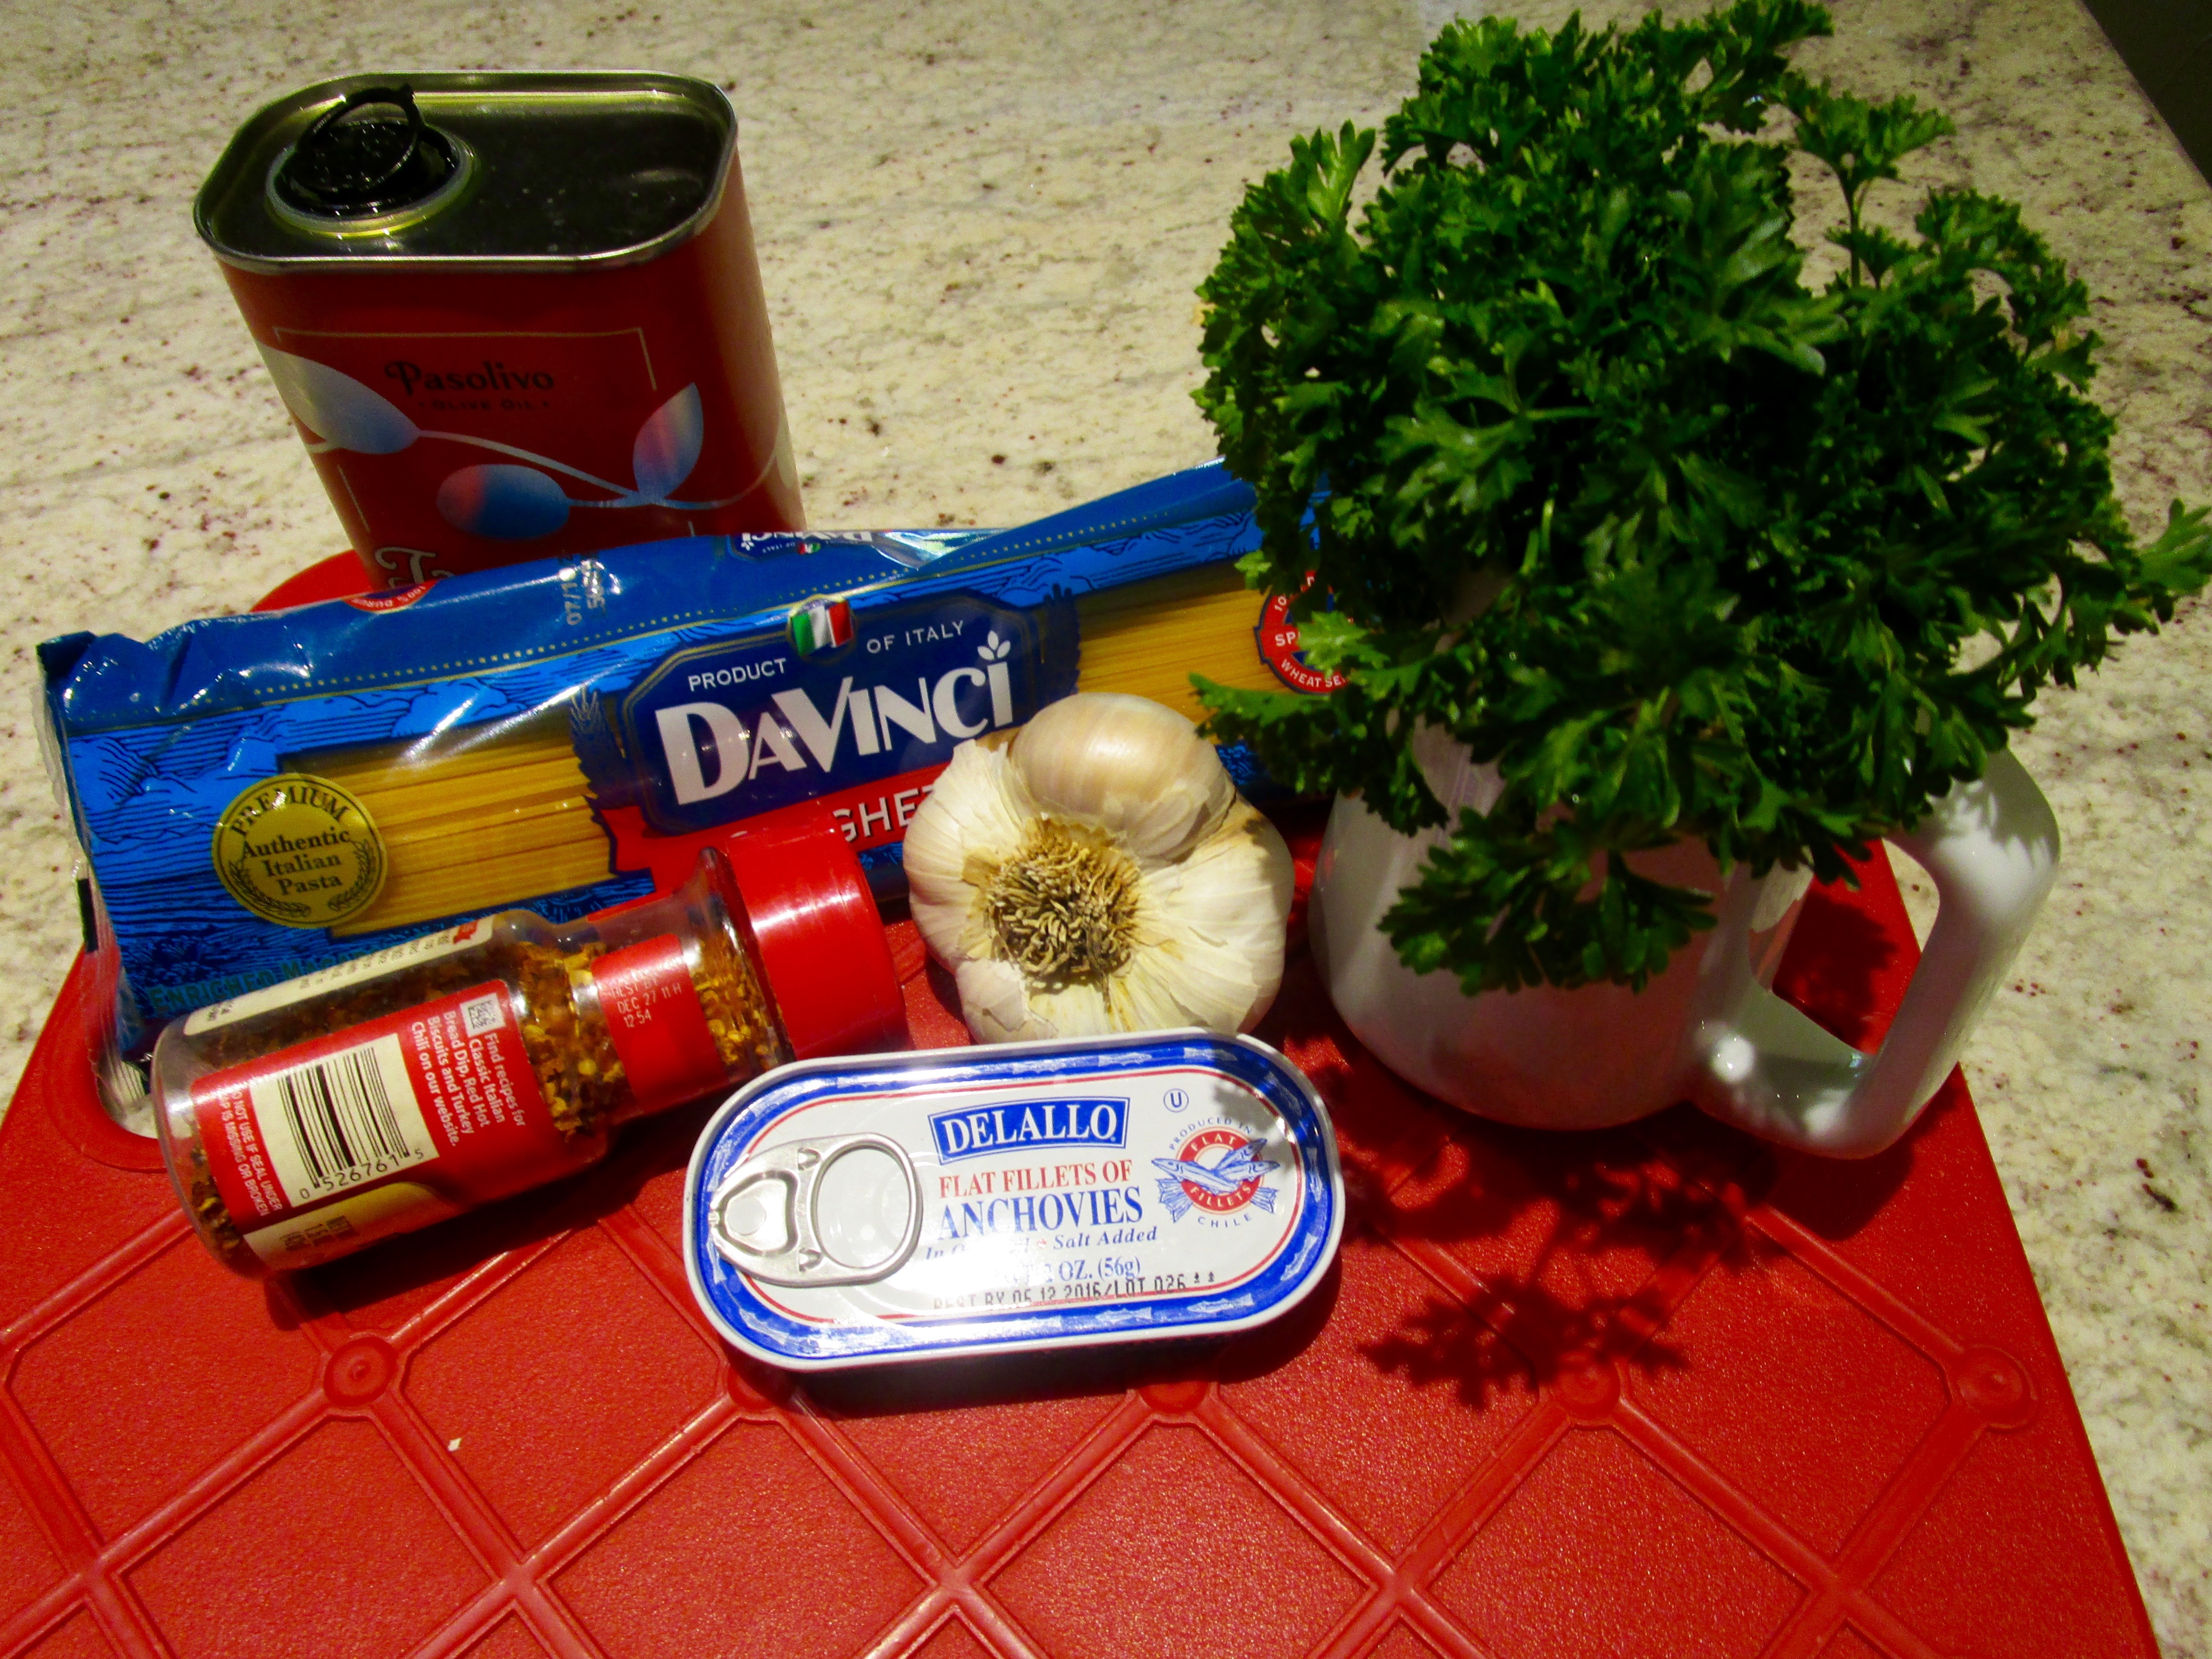 """MY PANTRY WAS UP TO THE TASK OF PROVIDING """"COMING HOME PASTA"""" WHEN I RETURNED TO ASPEN AFTER AN 8-DAY TRIP."""